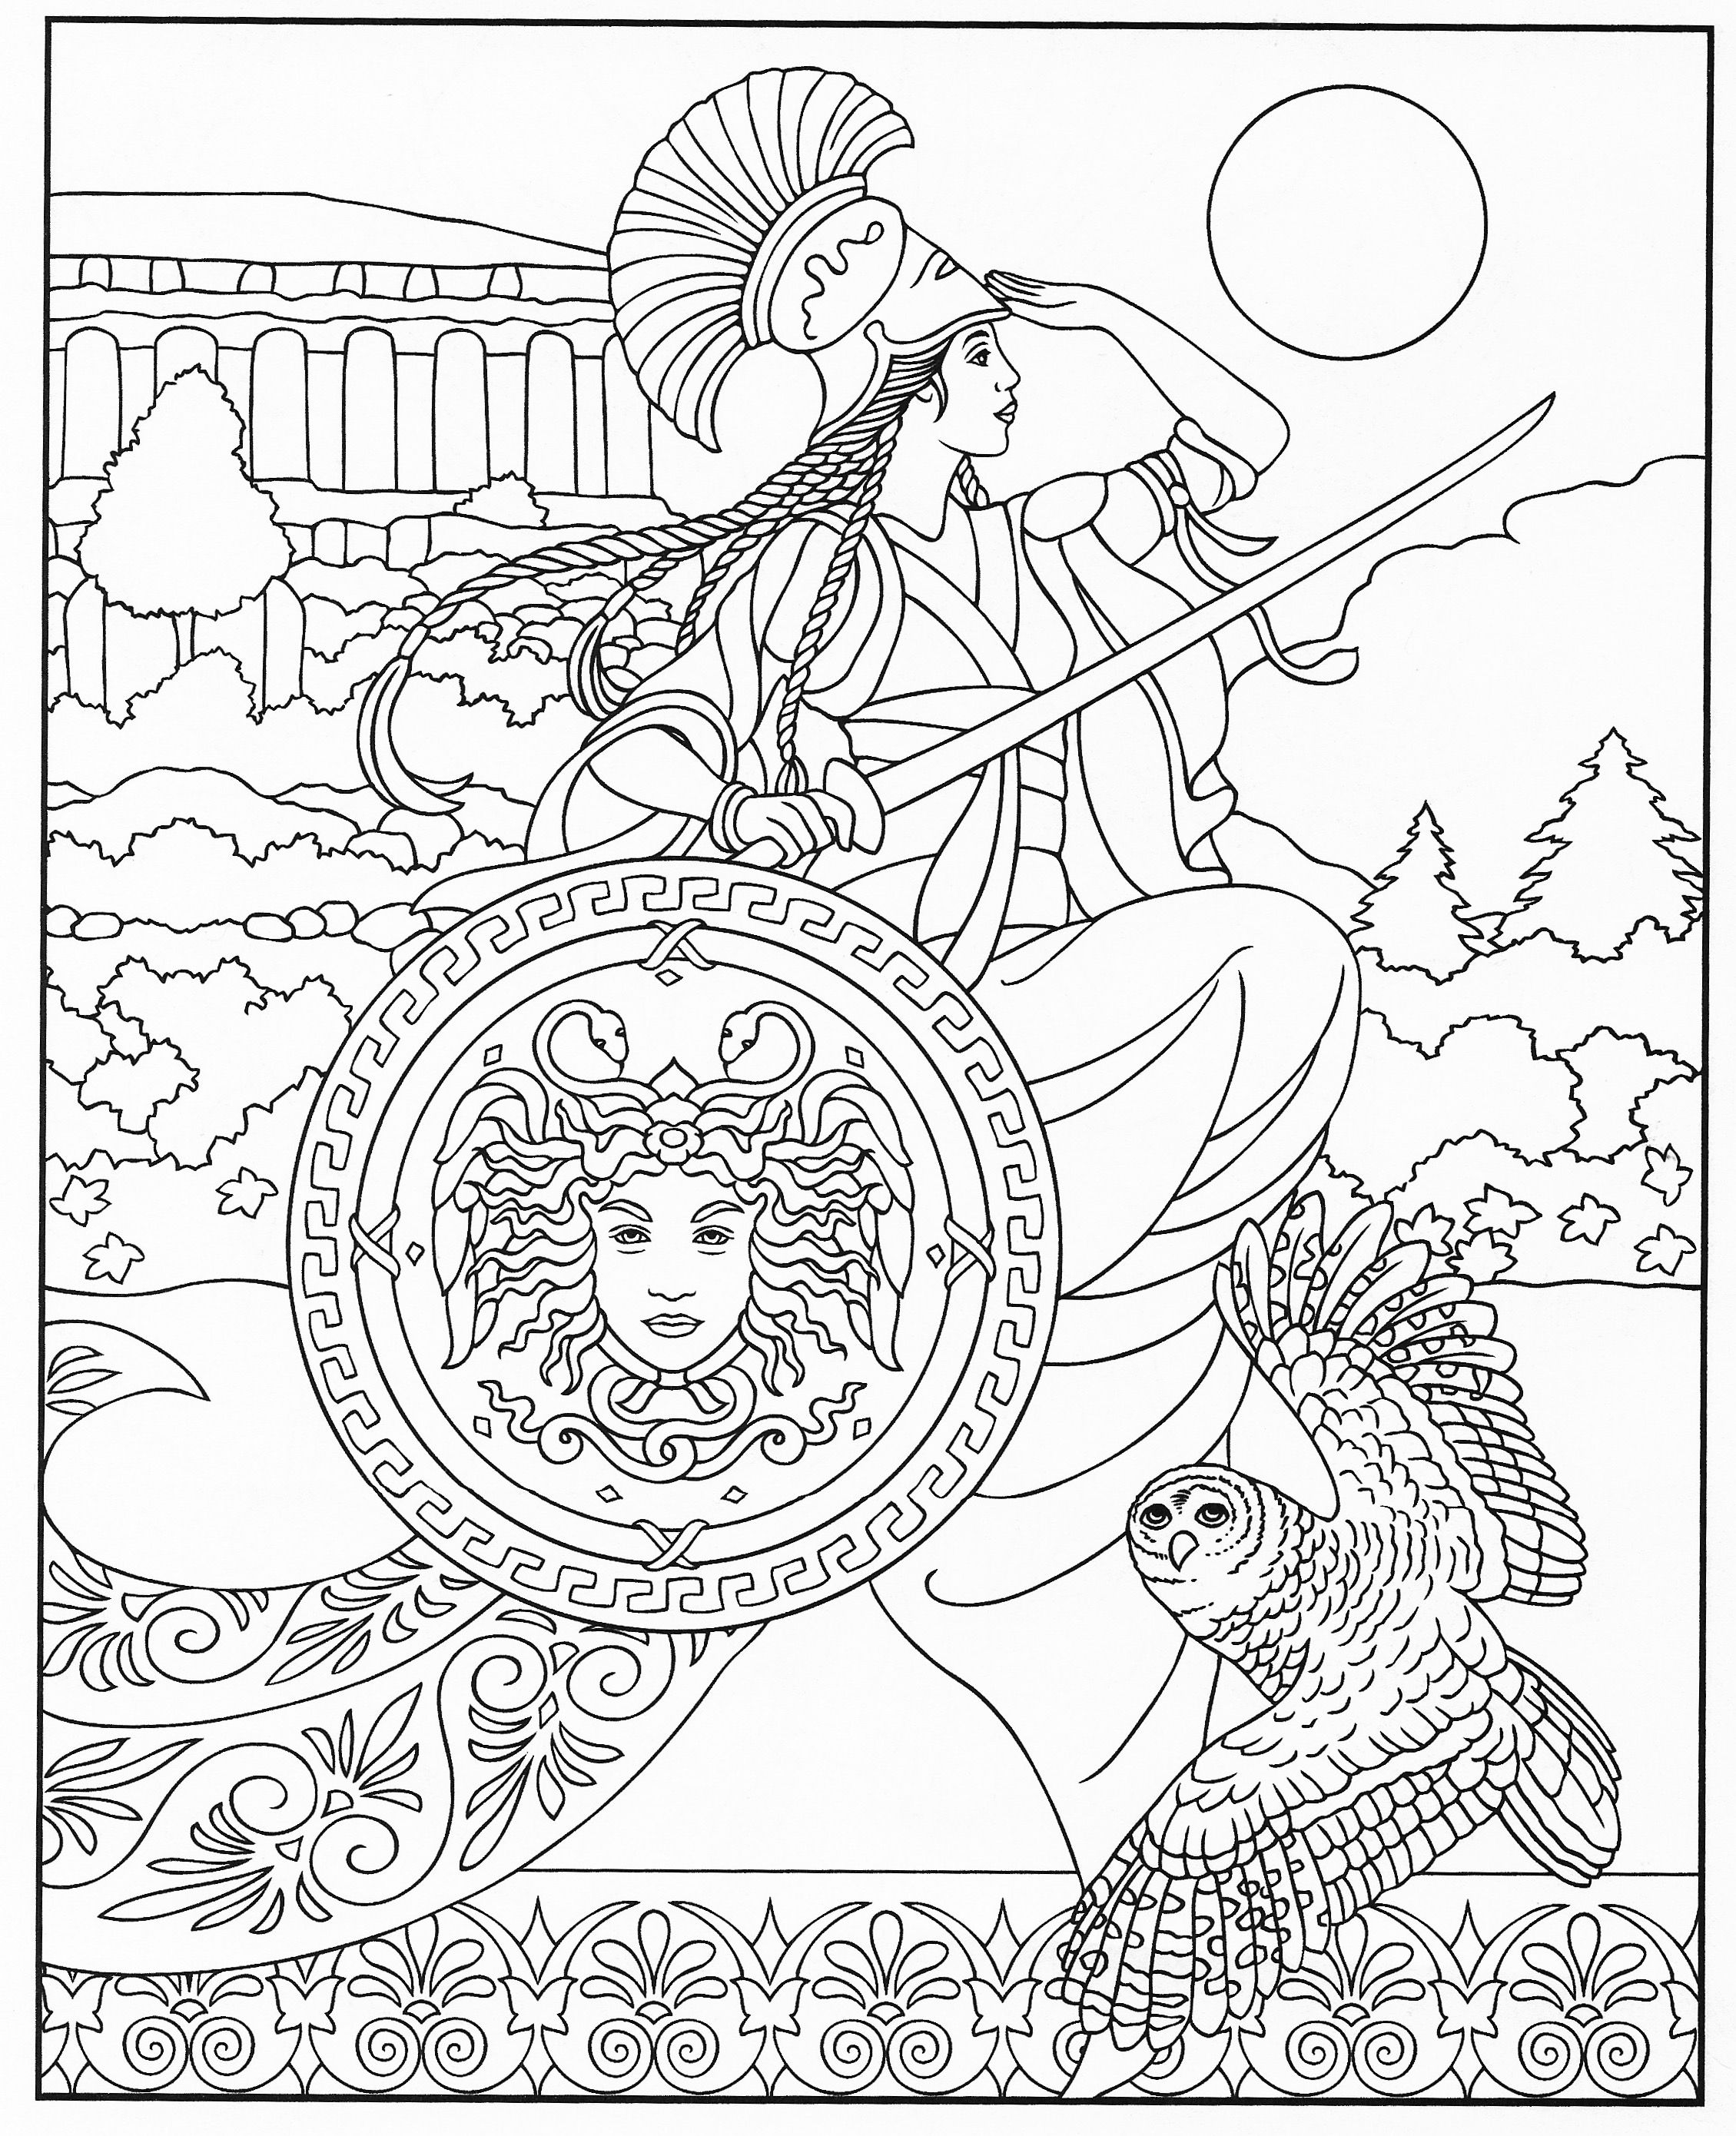 Pin de Małgorzata Kitka en Coloring pages to print - Fantasy | Pinterest